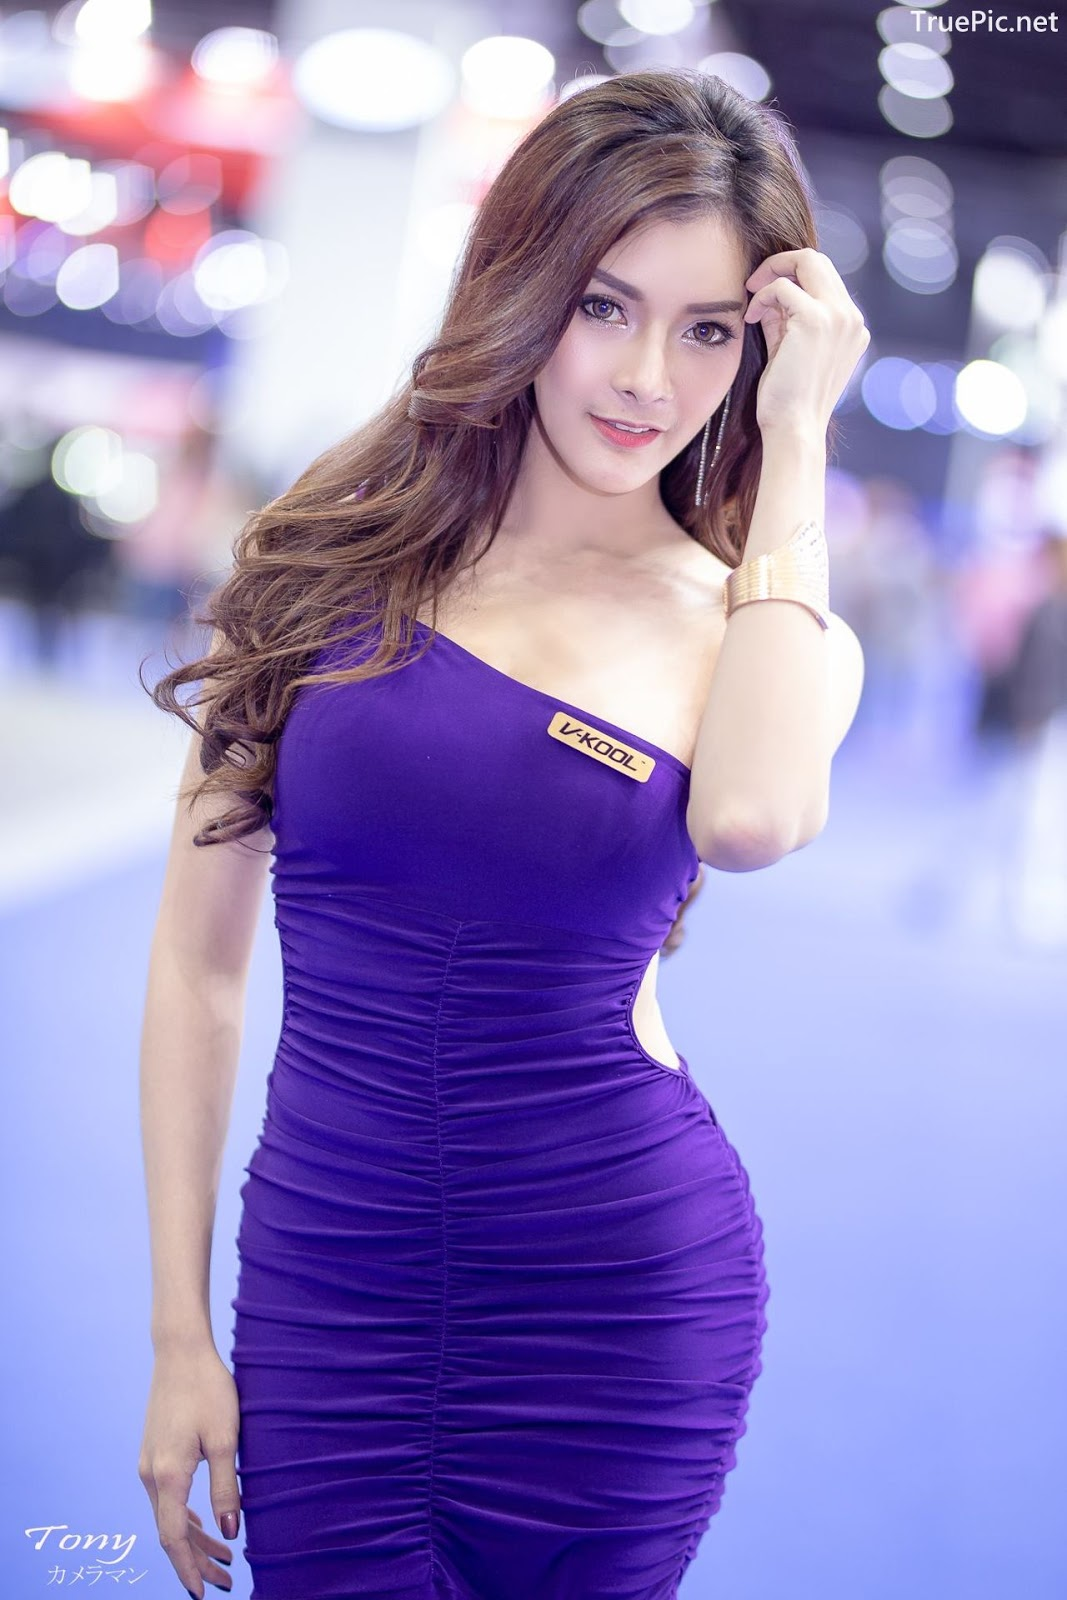 Image-Thailand-Hot-Model-Thai-Racing-Girl-At-Big-Motor-2018-TruePic.net- Picture-8